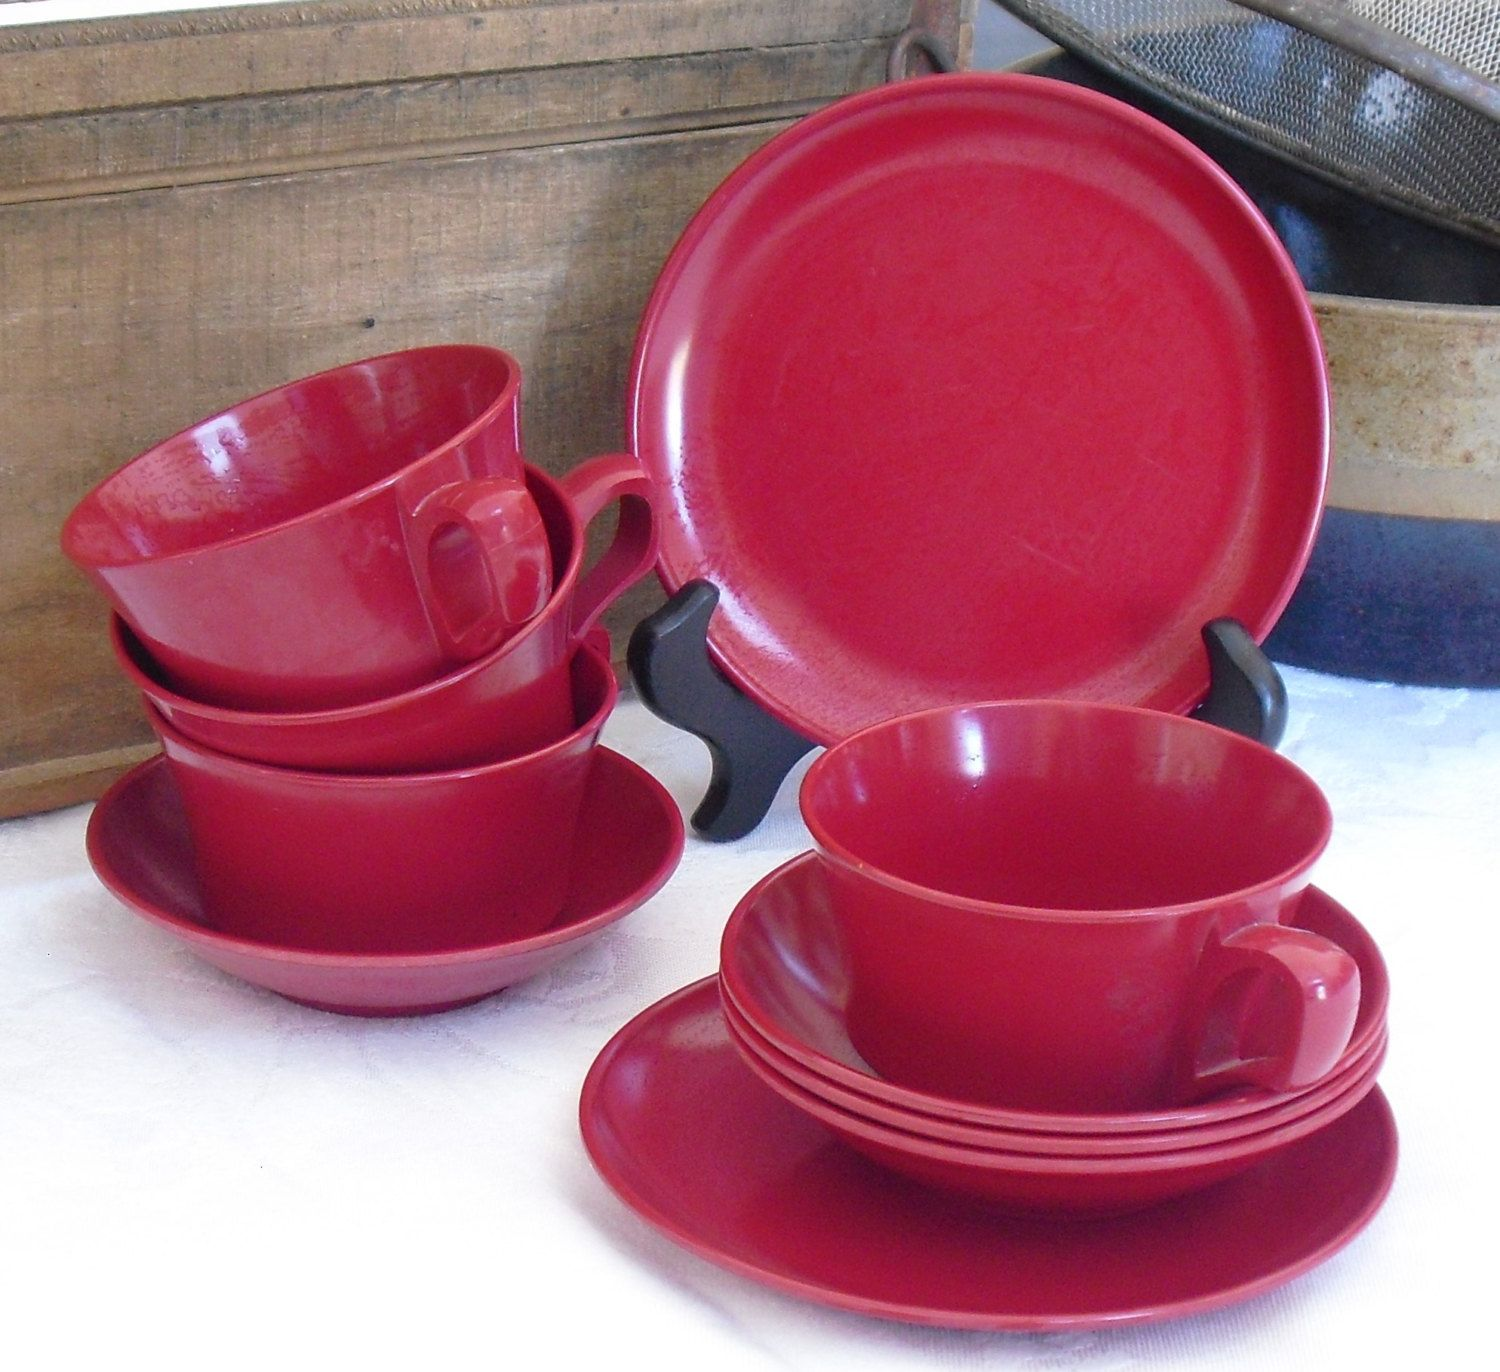 Vintage Red Melamine Cups Bowls Plates Allied Chemical 1950s Picnic Dish Set Camping Dinnerware Plastic Dishes Mid Century Melmac